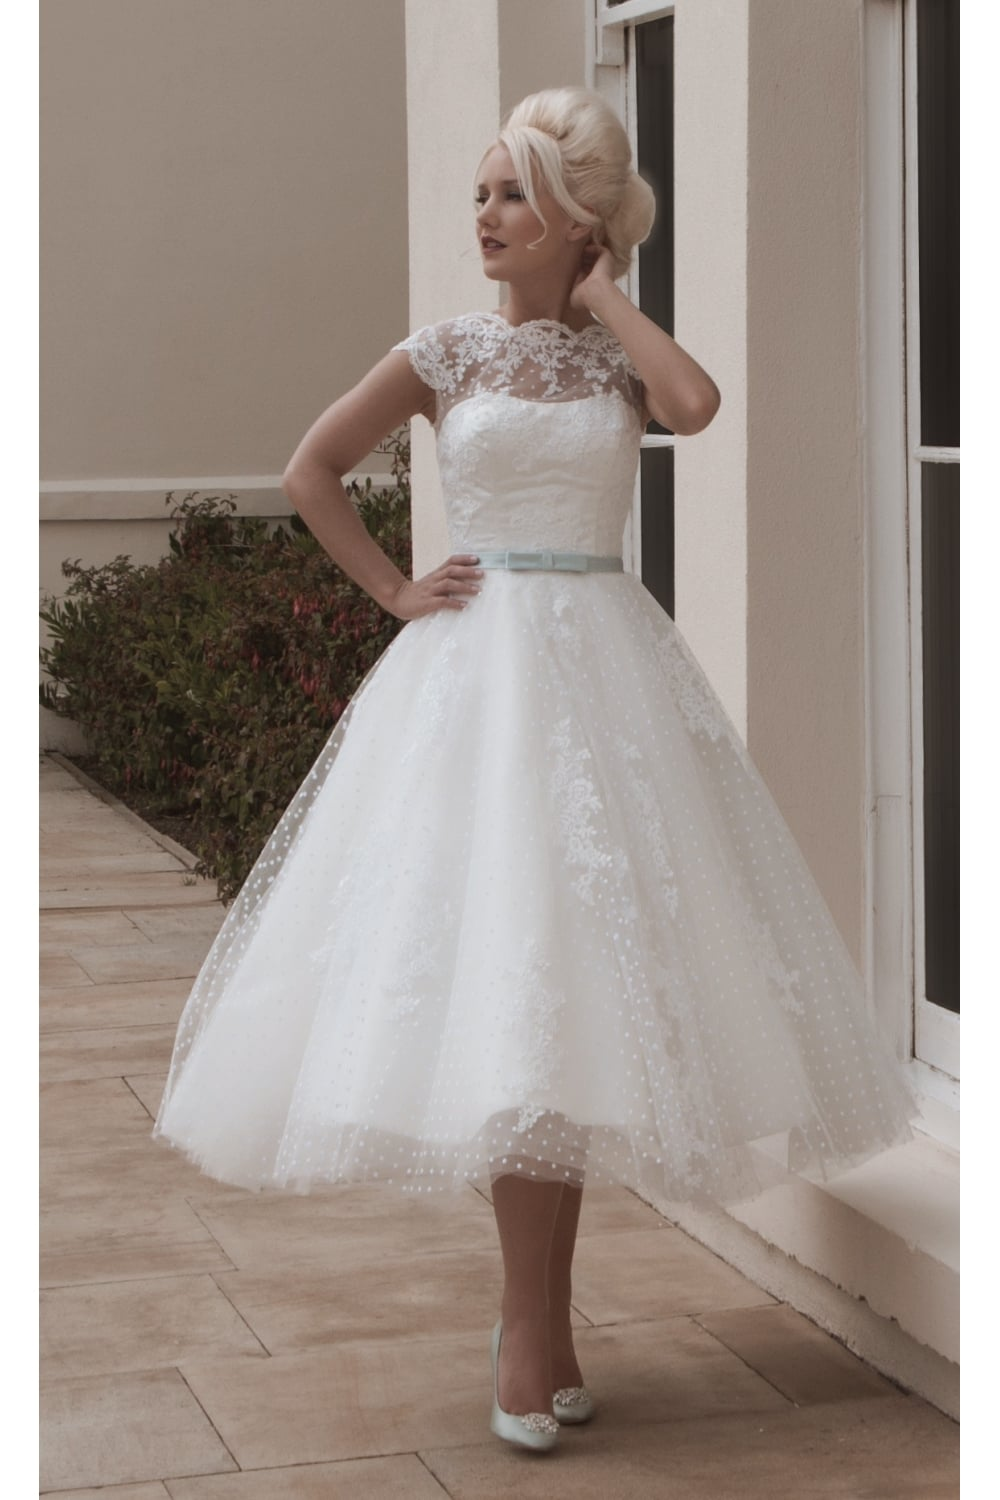 Short vintage lace wedding dresses uk mini bridal for Short wedding dresses uk